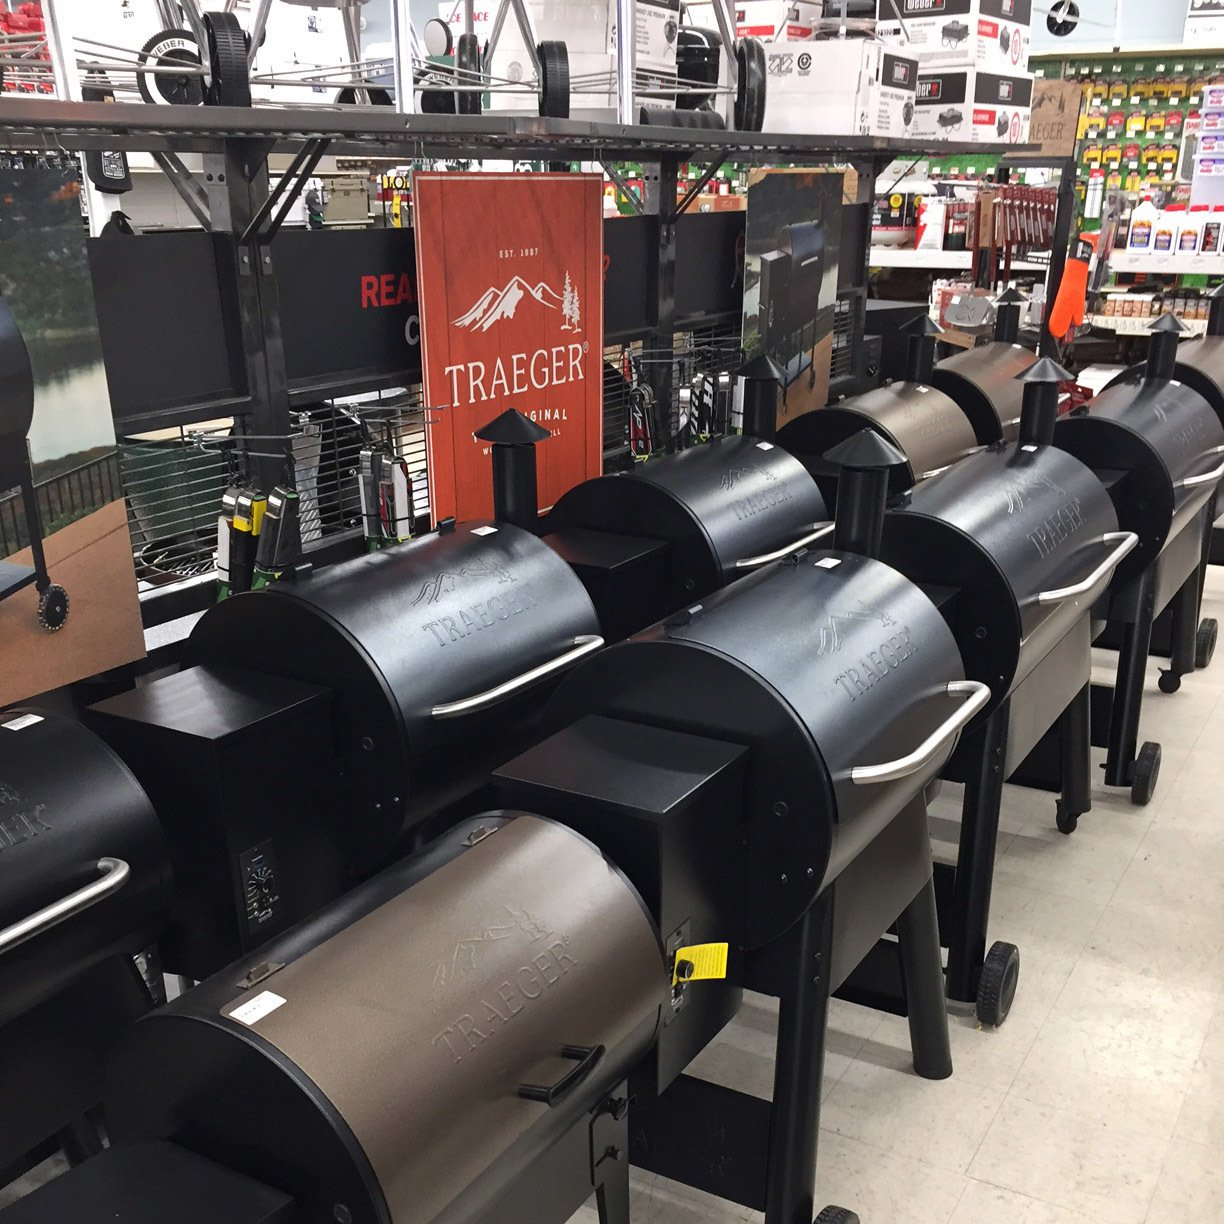 Traeger Grills display